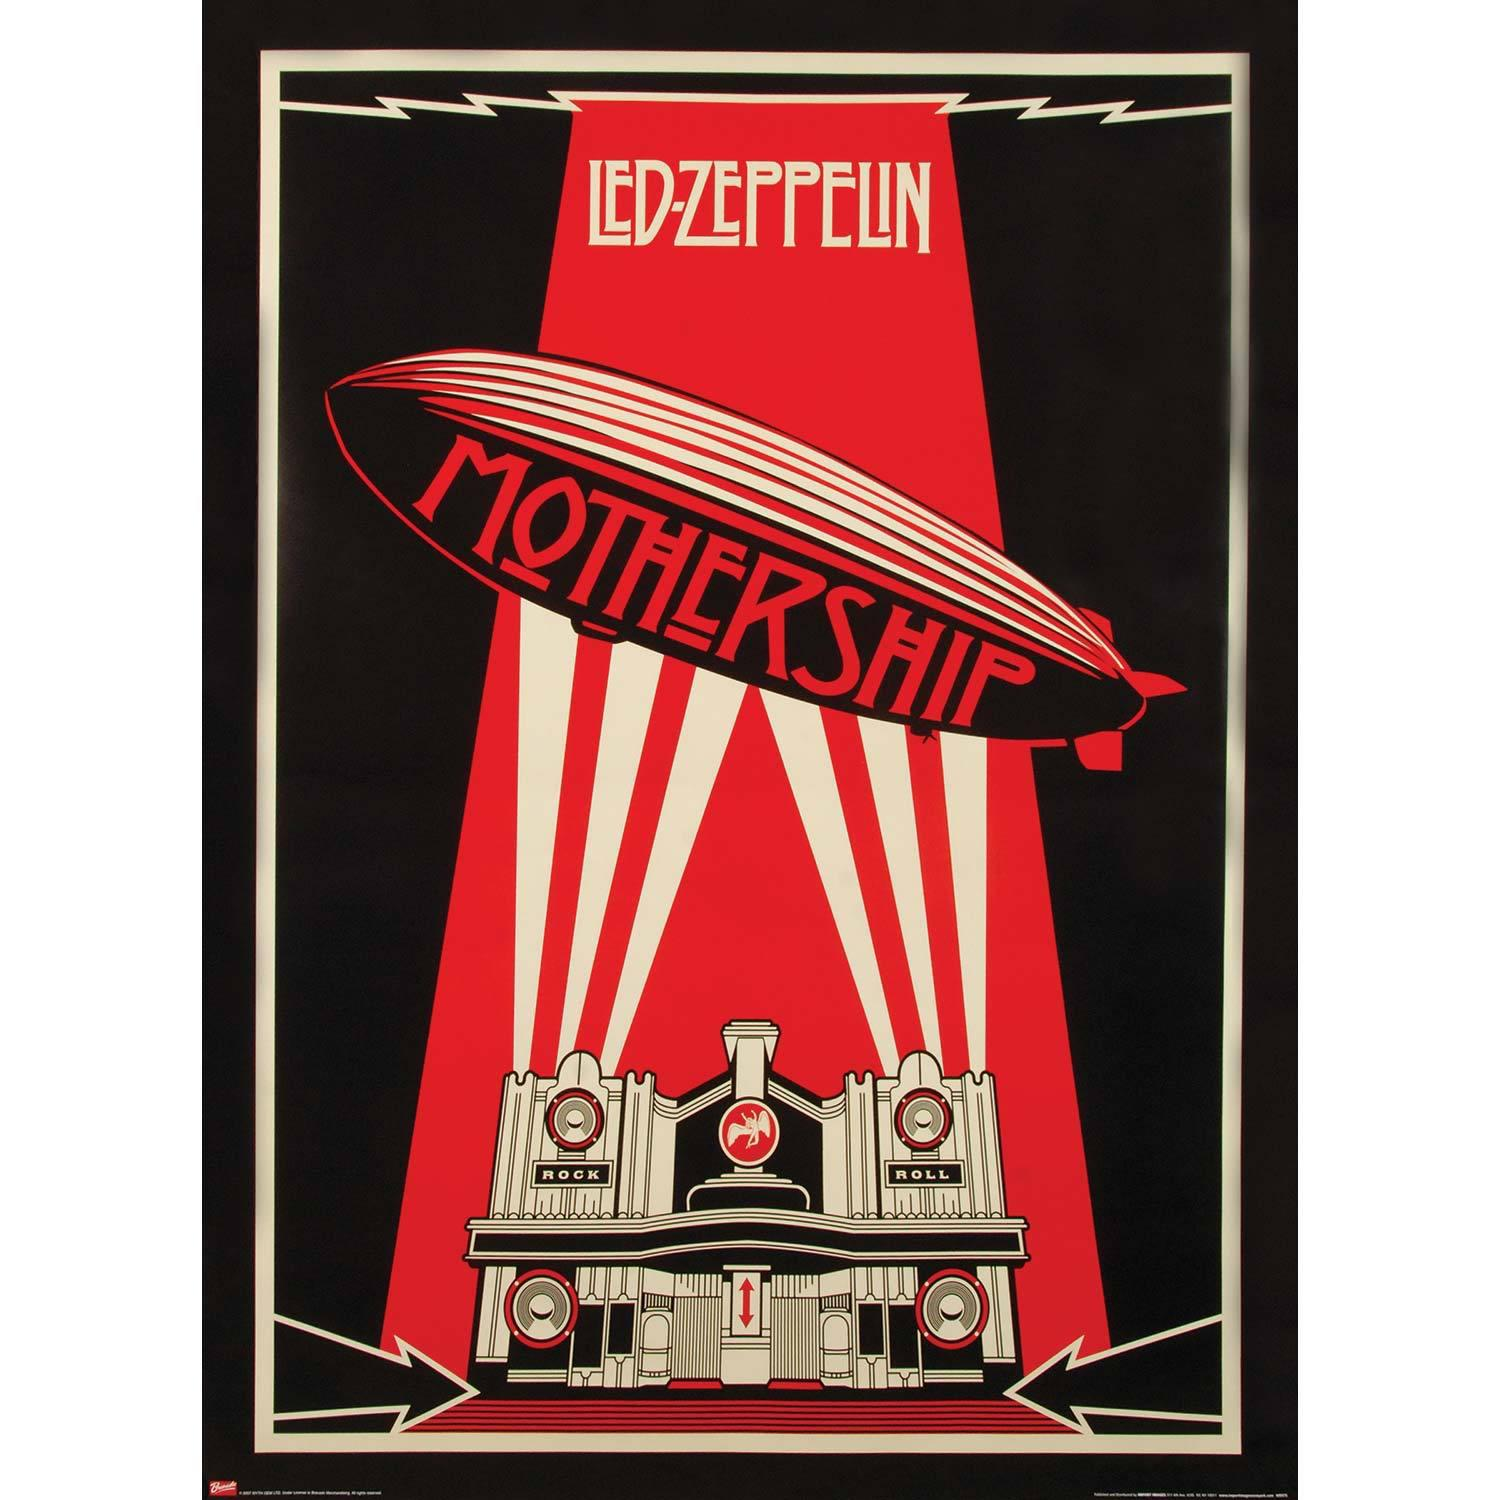 Image of Led Zeppelin Subway Poster